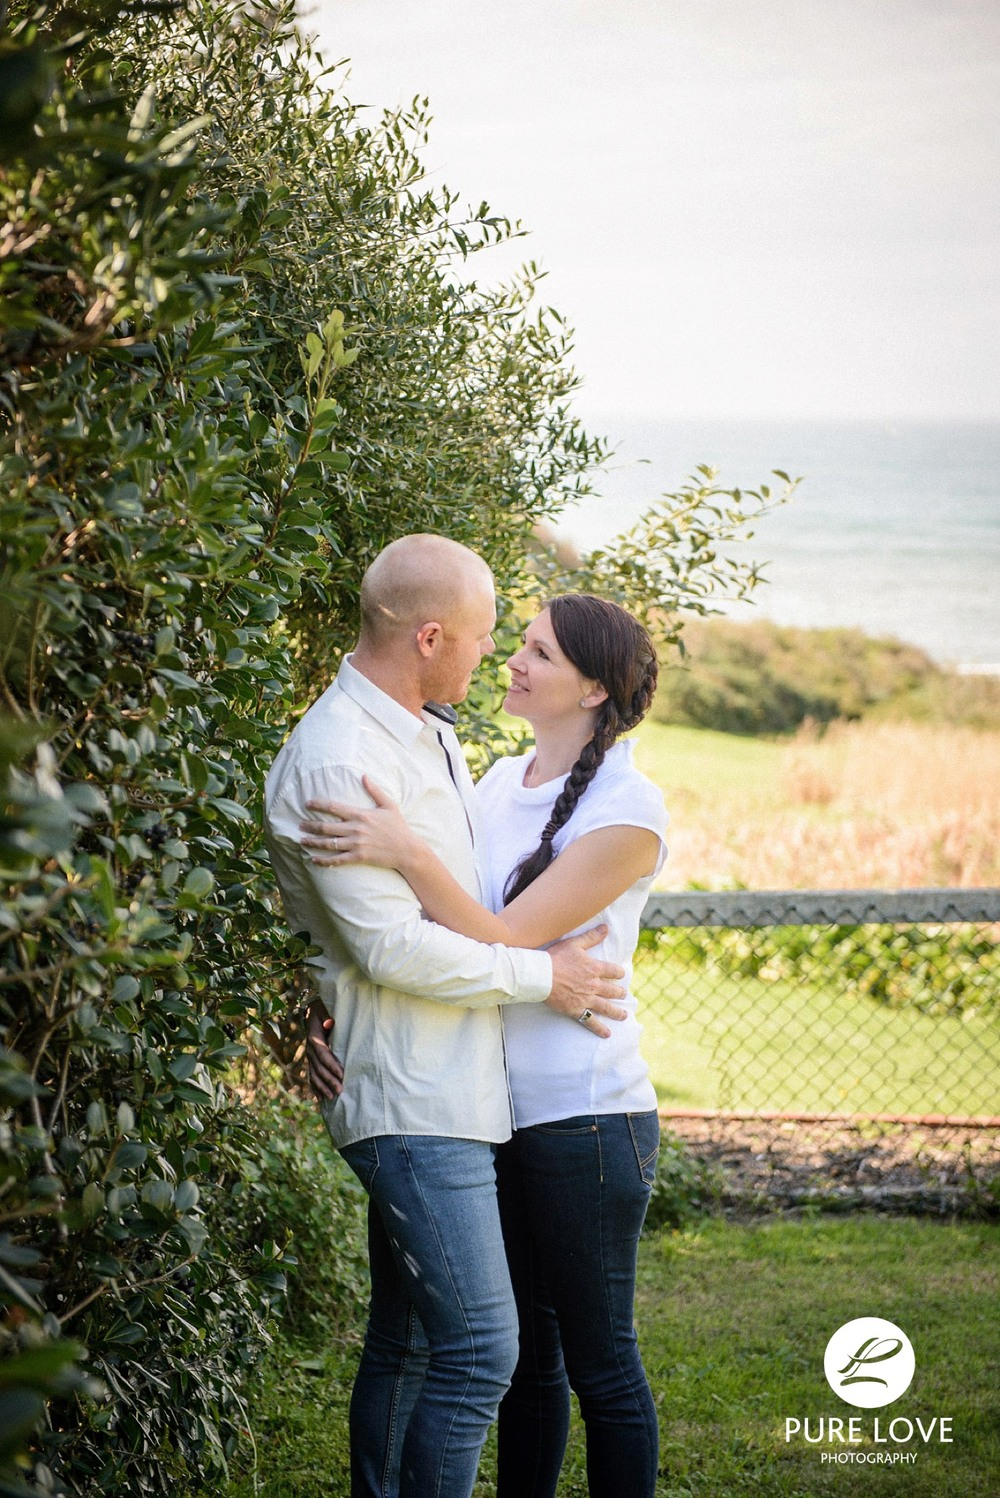 This couple definitely complemented each other by wearing white tops and jeans at their engagement session.